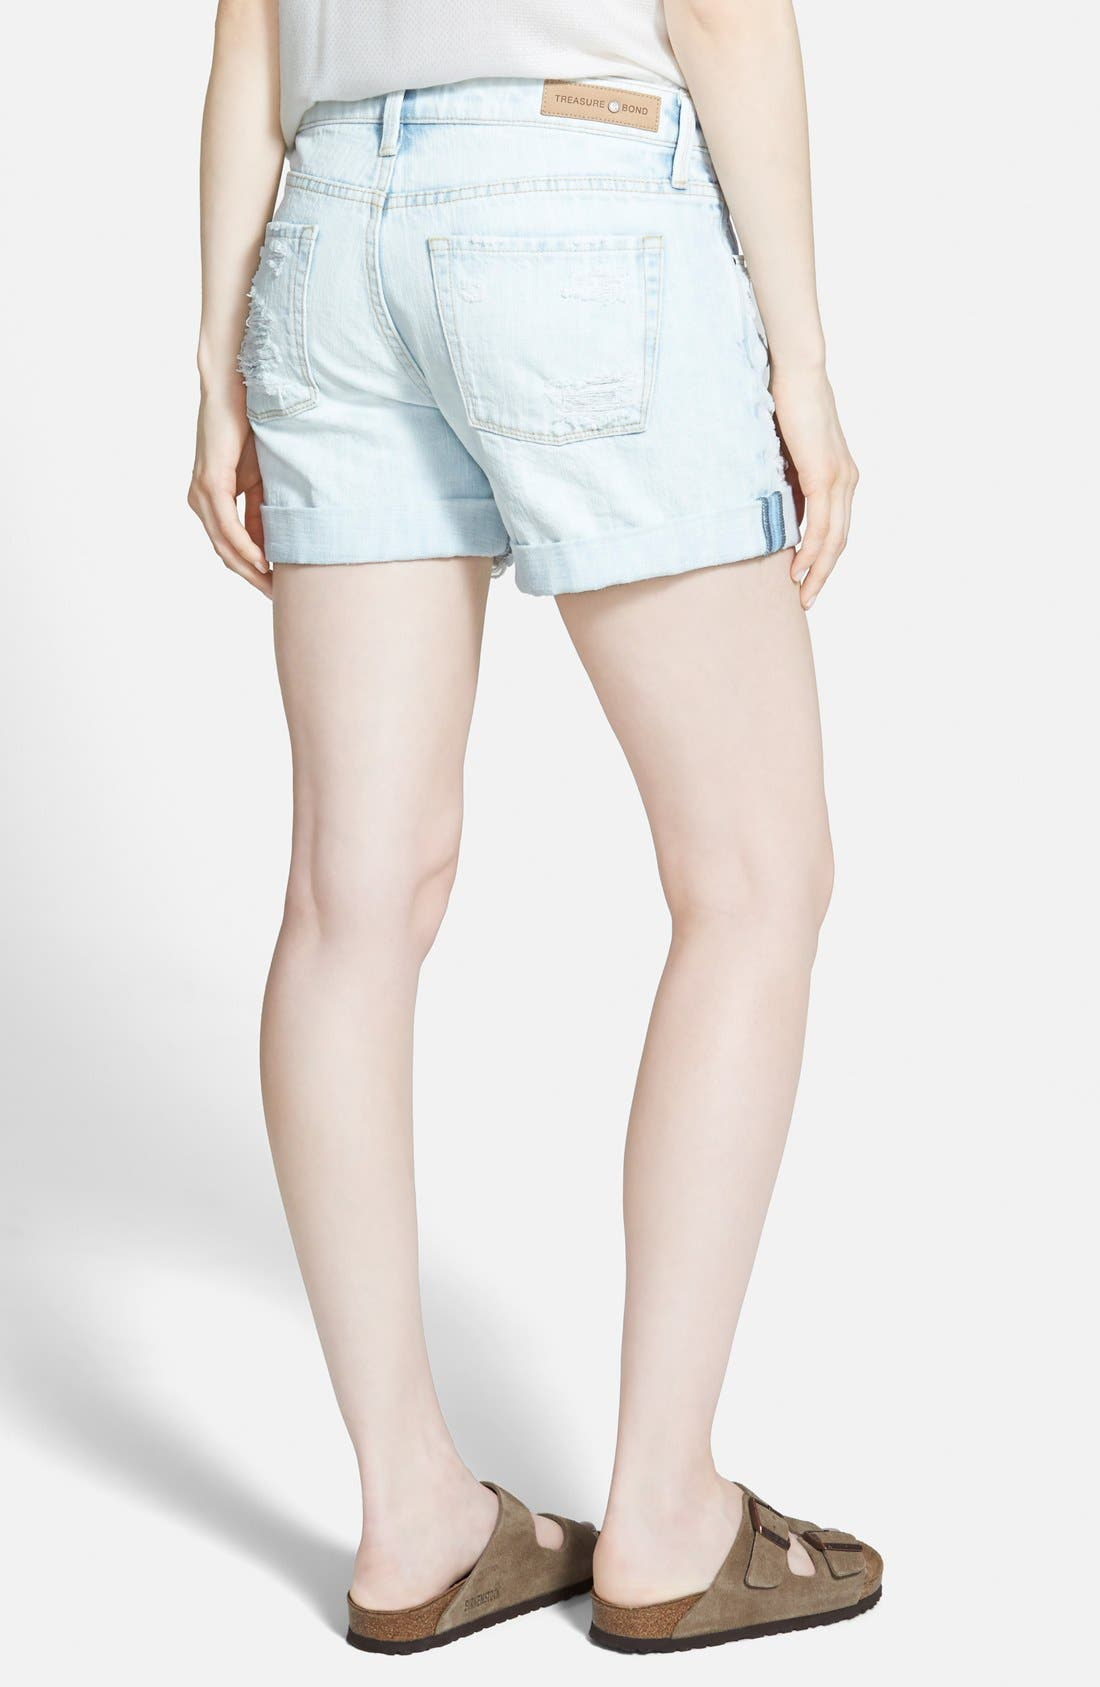 TREASURE & BOND, Treasure&Bond Roll-Up Denim Boyfriend Shorts, Alternate thumbnail 3, color, 400